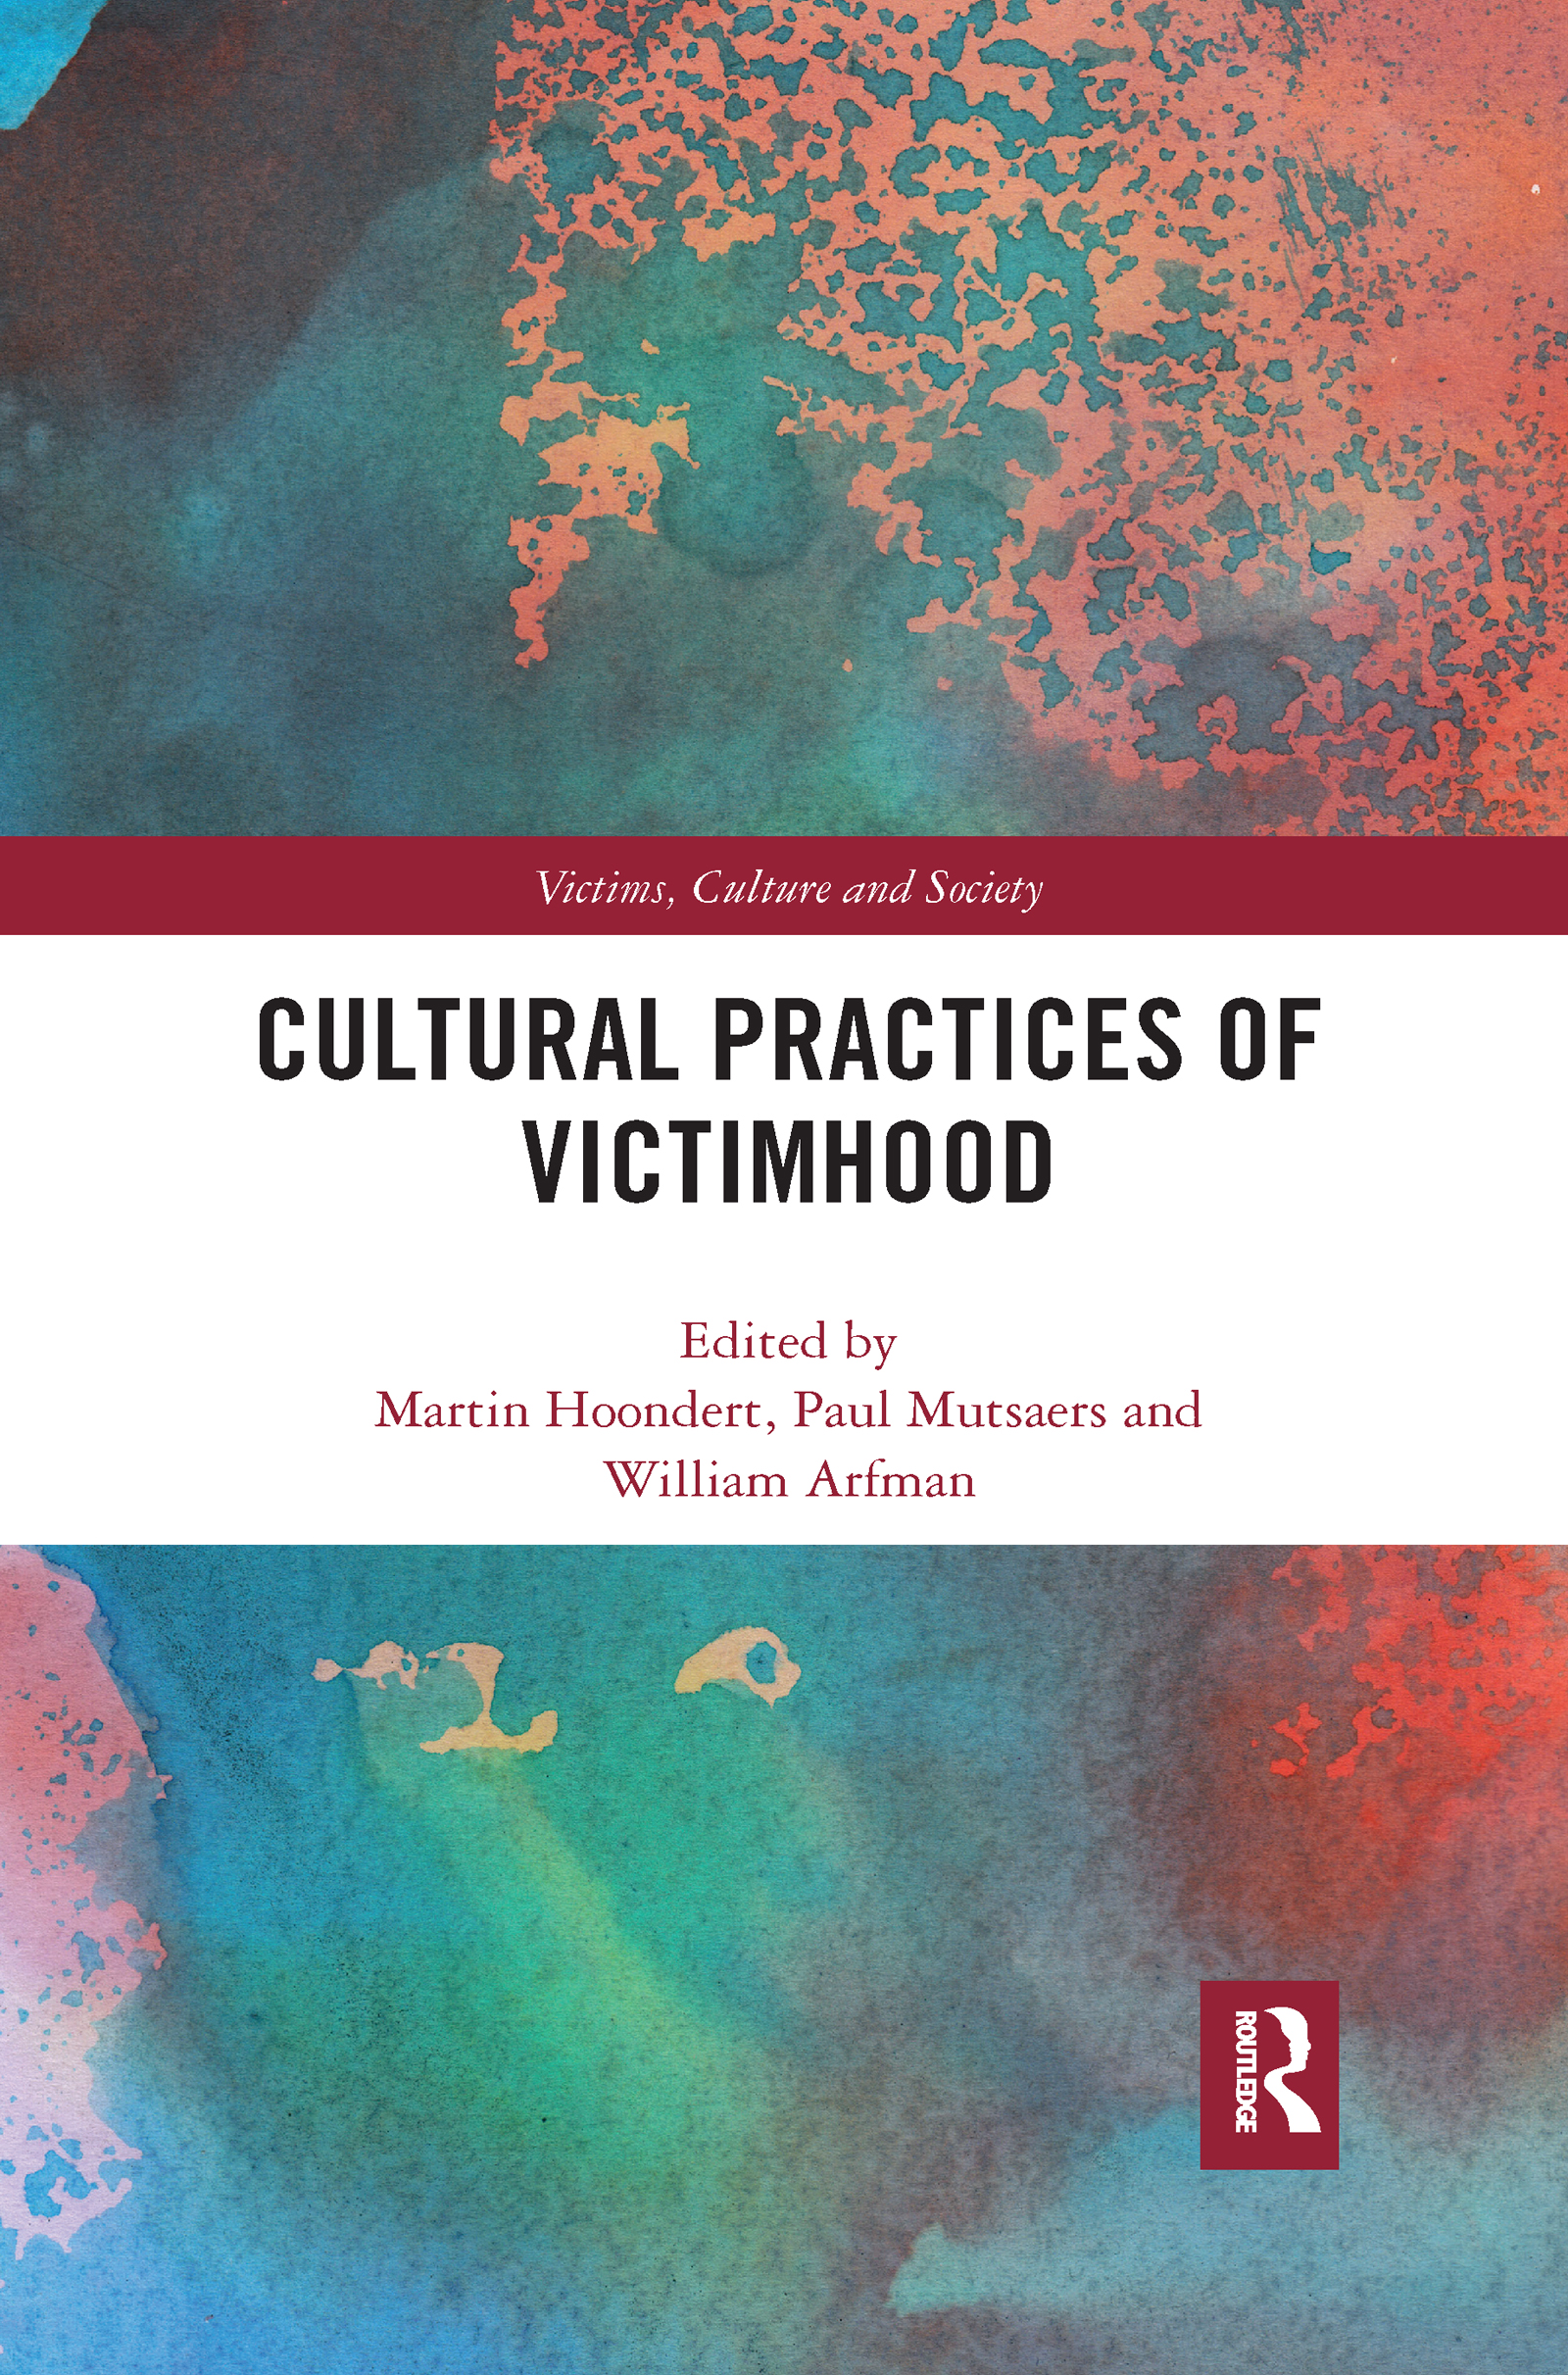 Cultural Practices of Victimhood